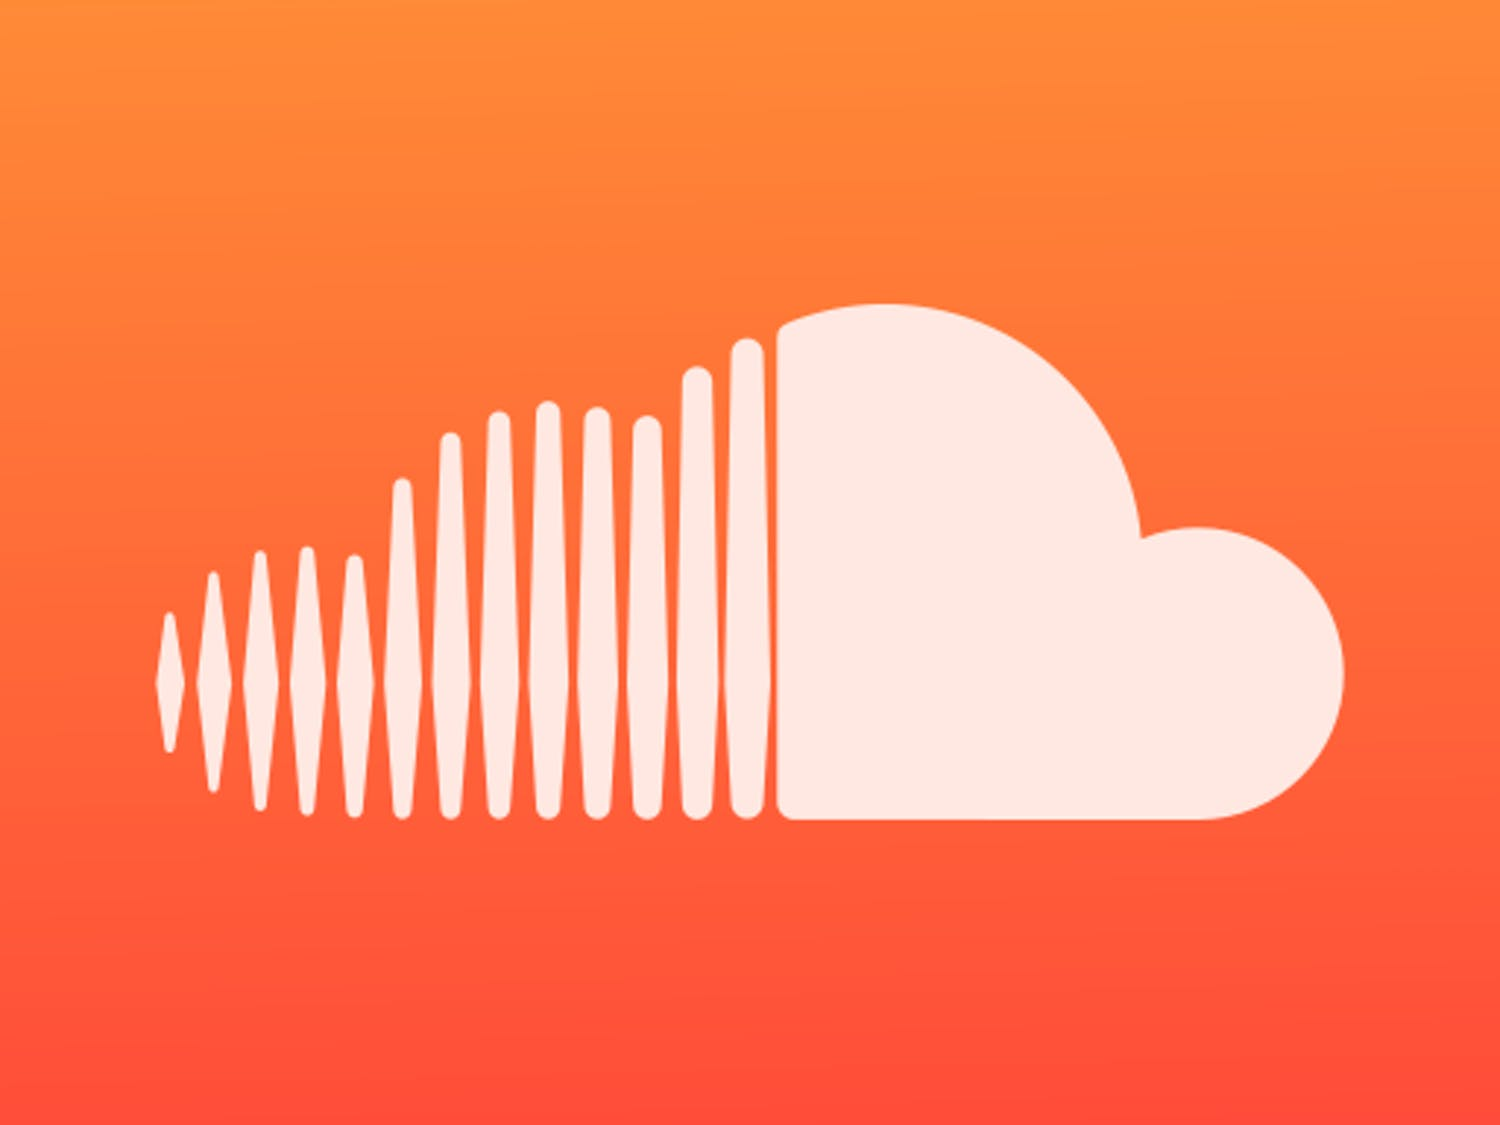 Streaming services like SoundCloud are only gaining popularity, and they will likely dictate what music becomes popular and shapes the culture for years to come.